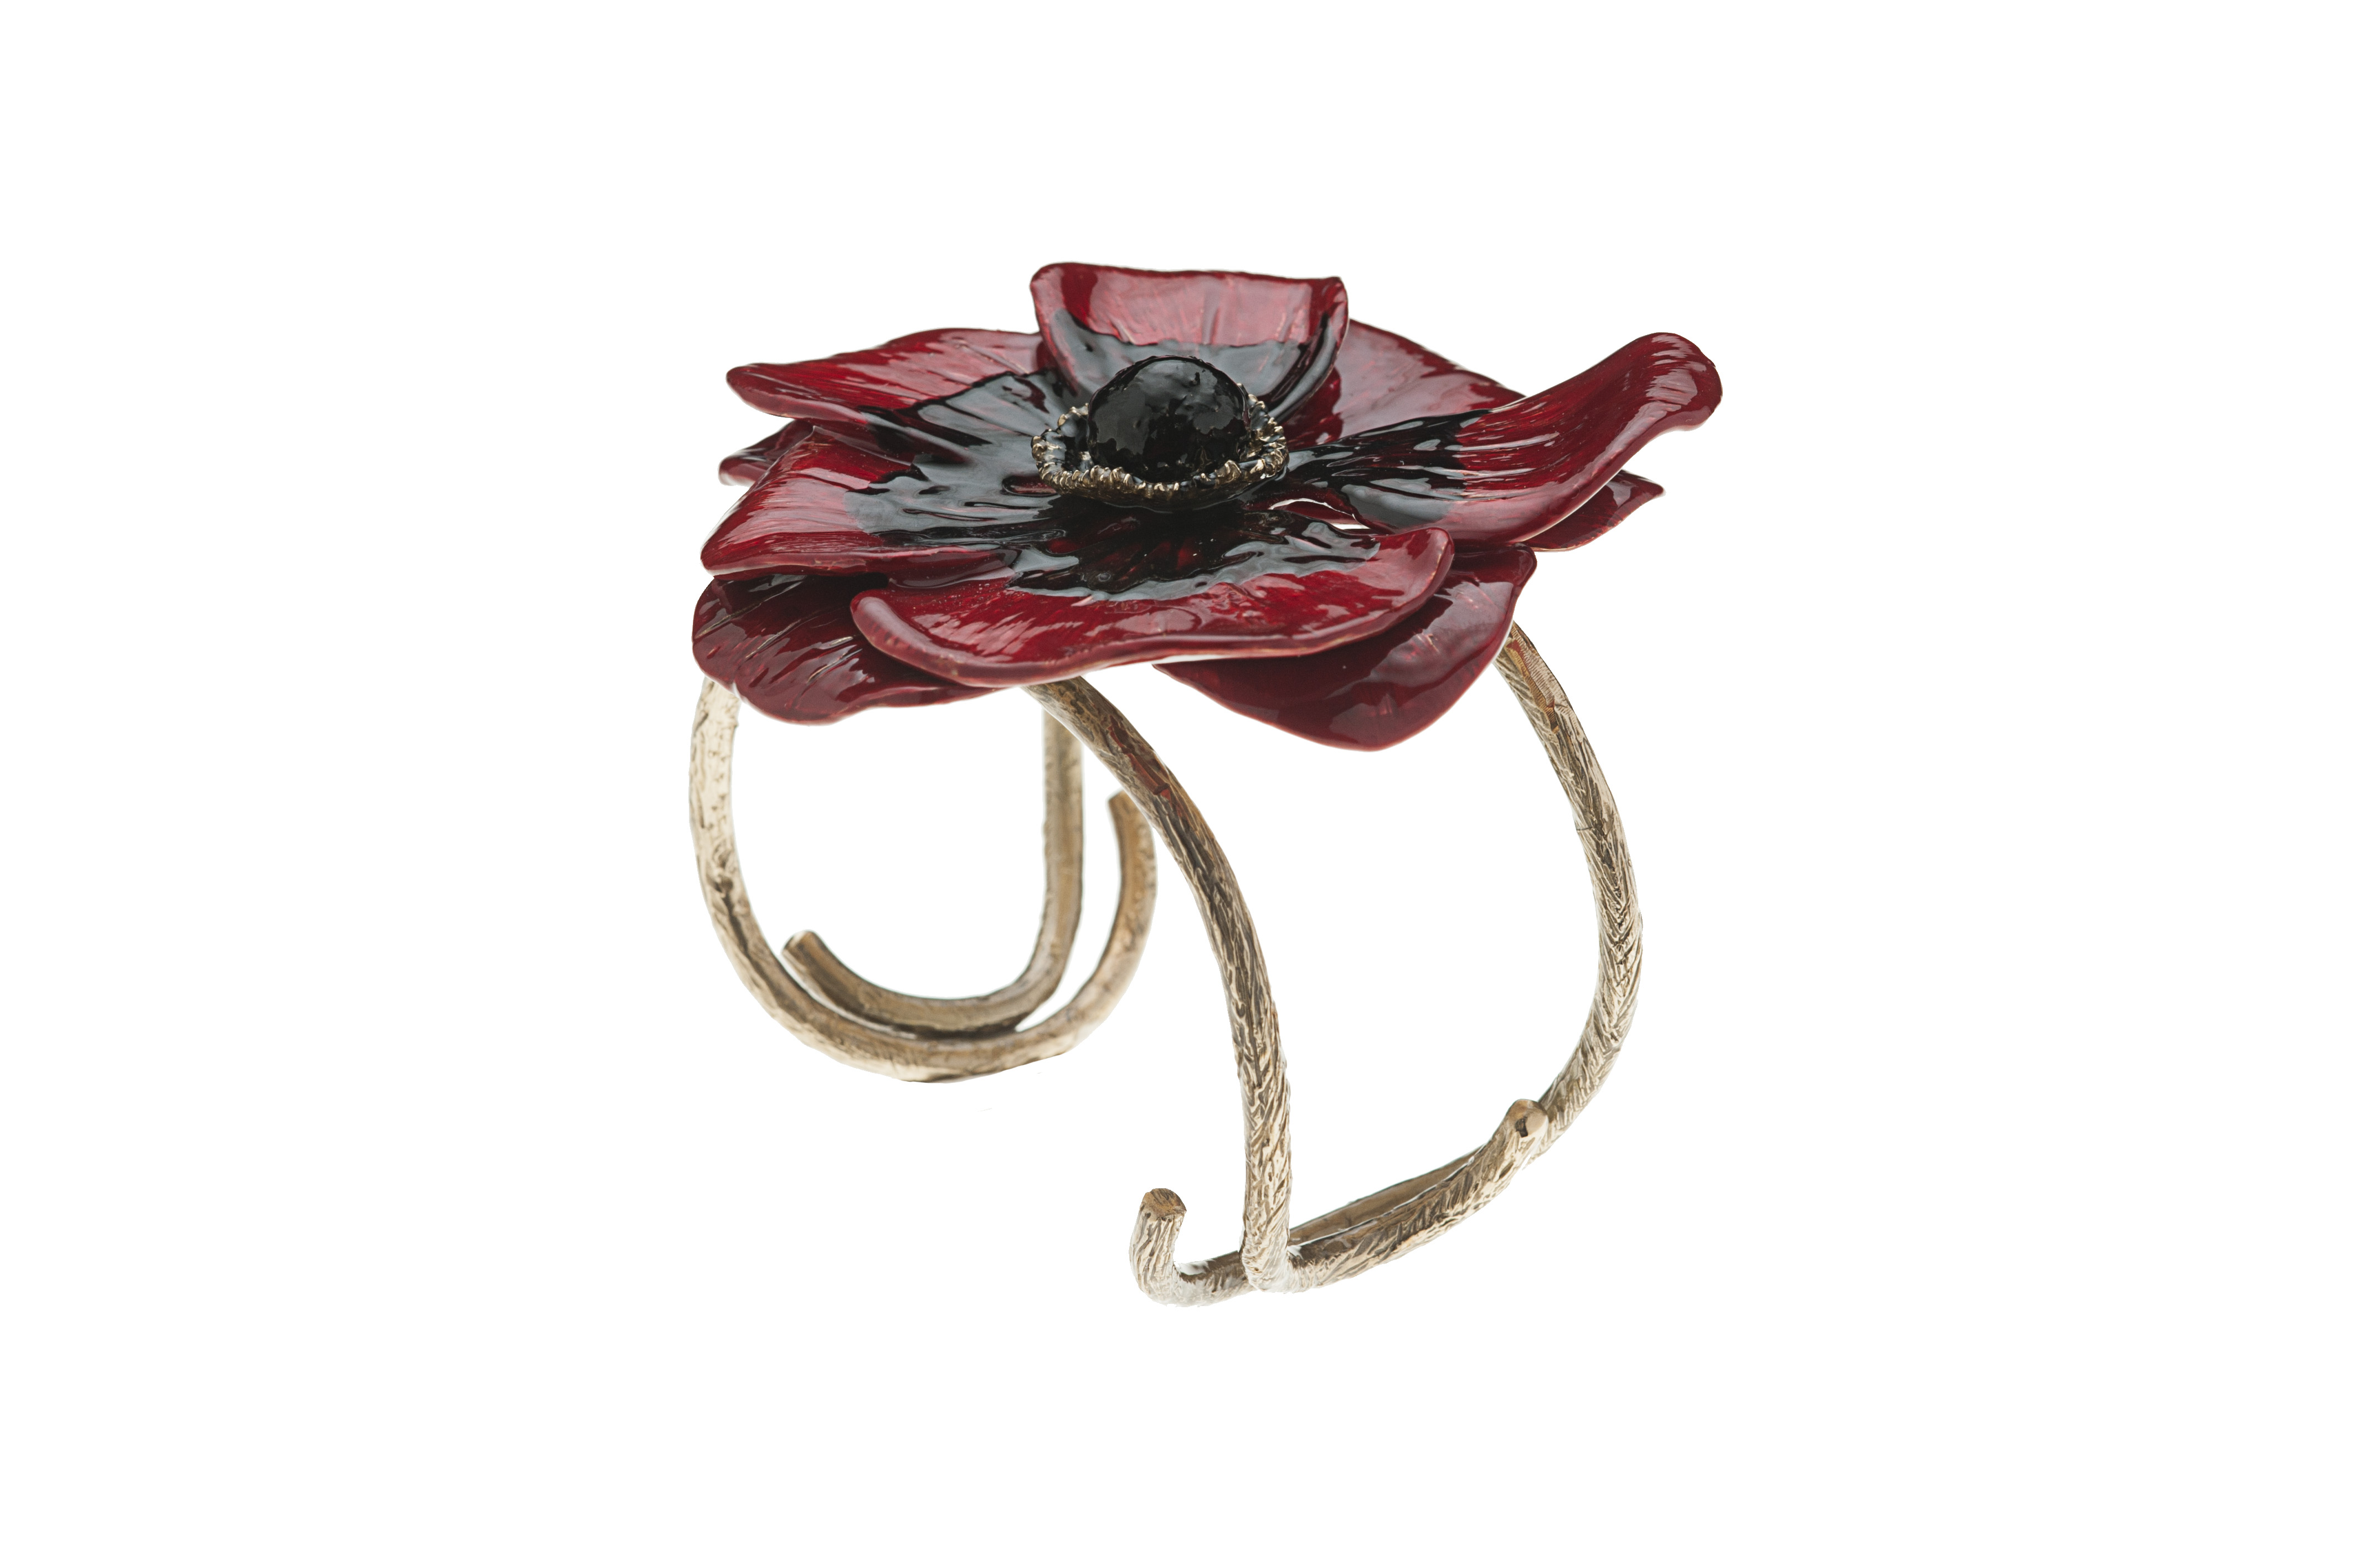 Bronze cuff bracelet with enamelled anemone